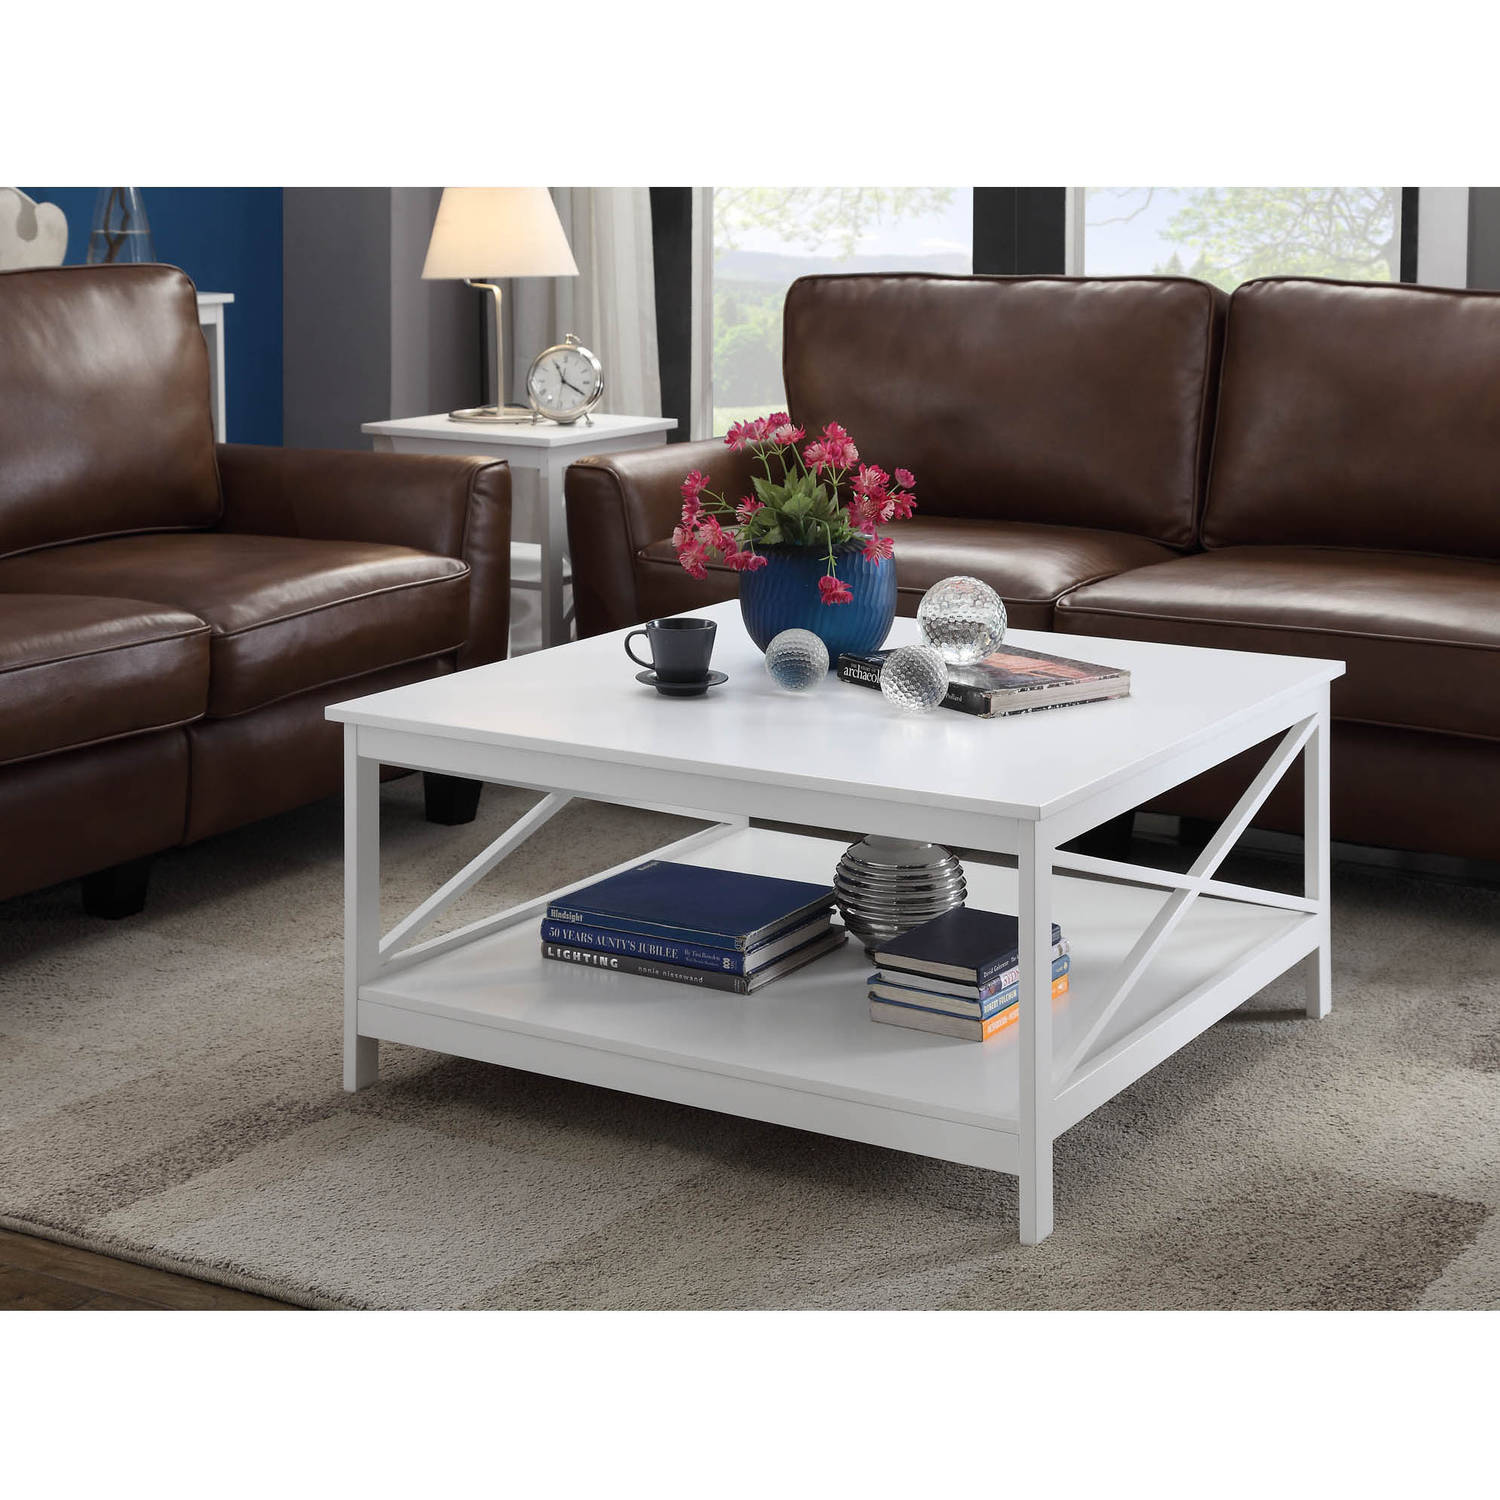 "Convenience Concepts Oxford 36"" Square Coffee Table, Mutliple Colors"